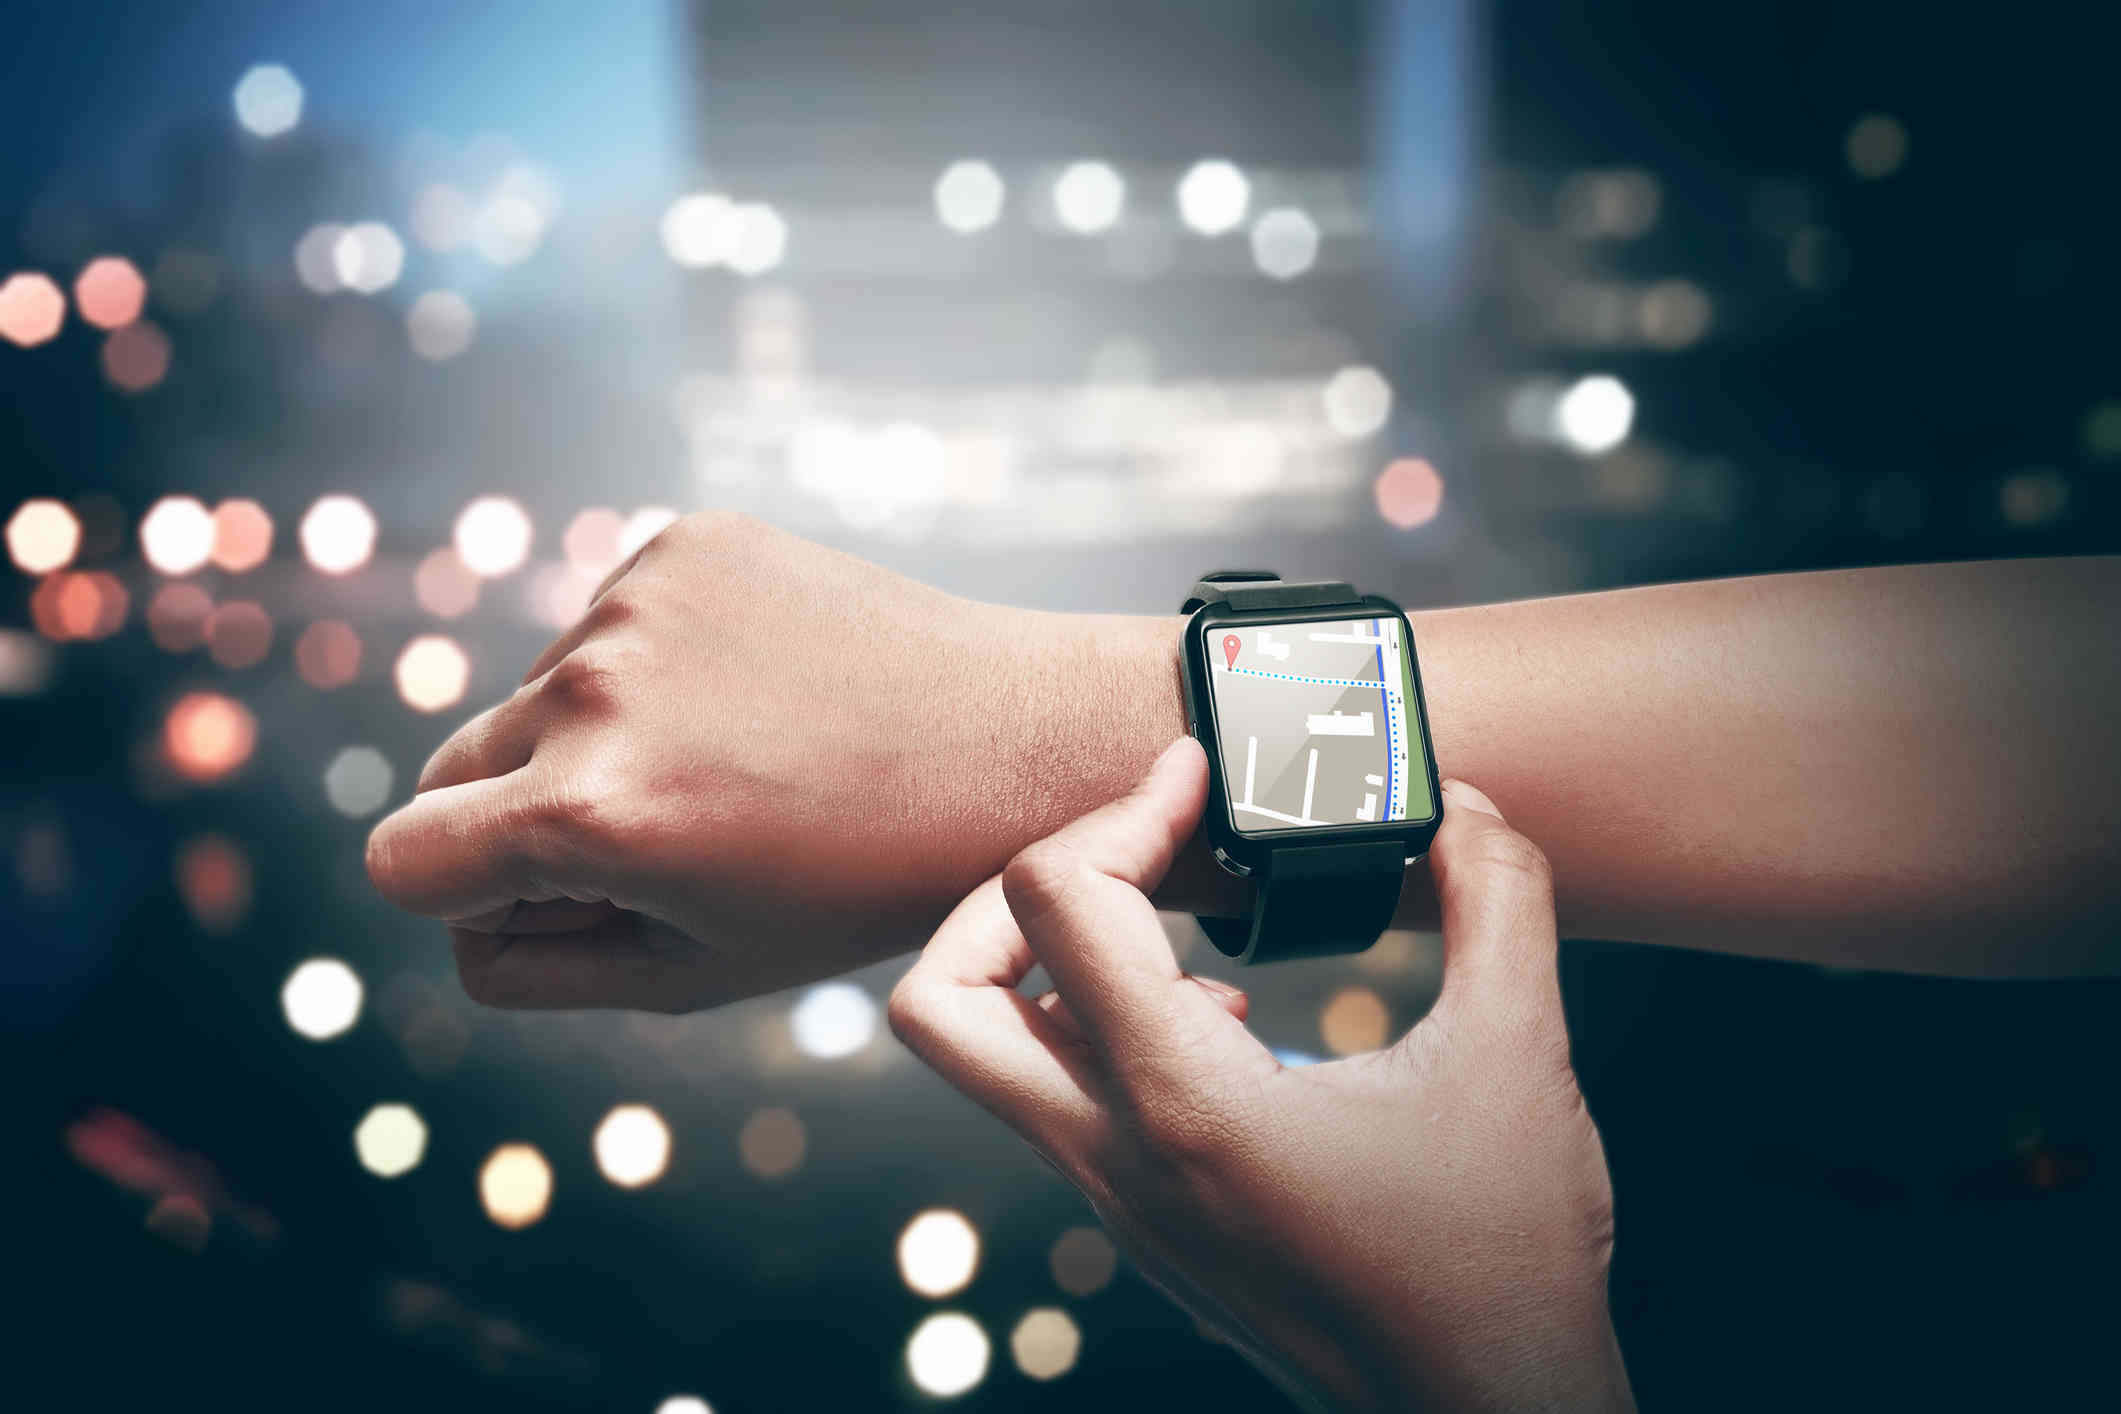 Top 10 Smartwatch Manufacturers : Riding the Popularity Wave for these Multidisciplinary Gadgets